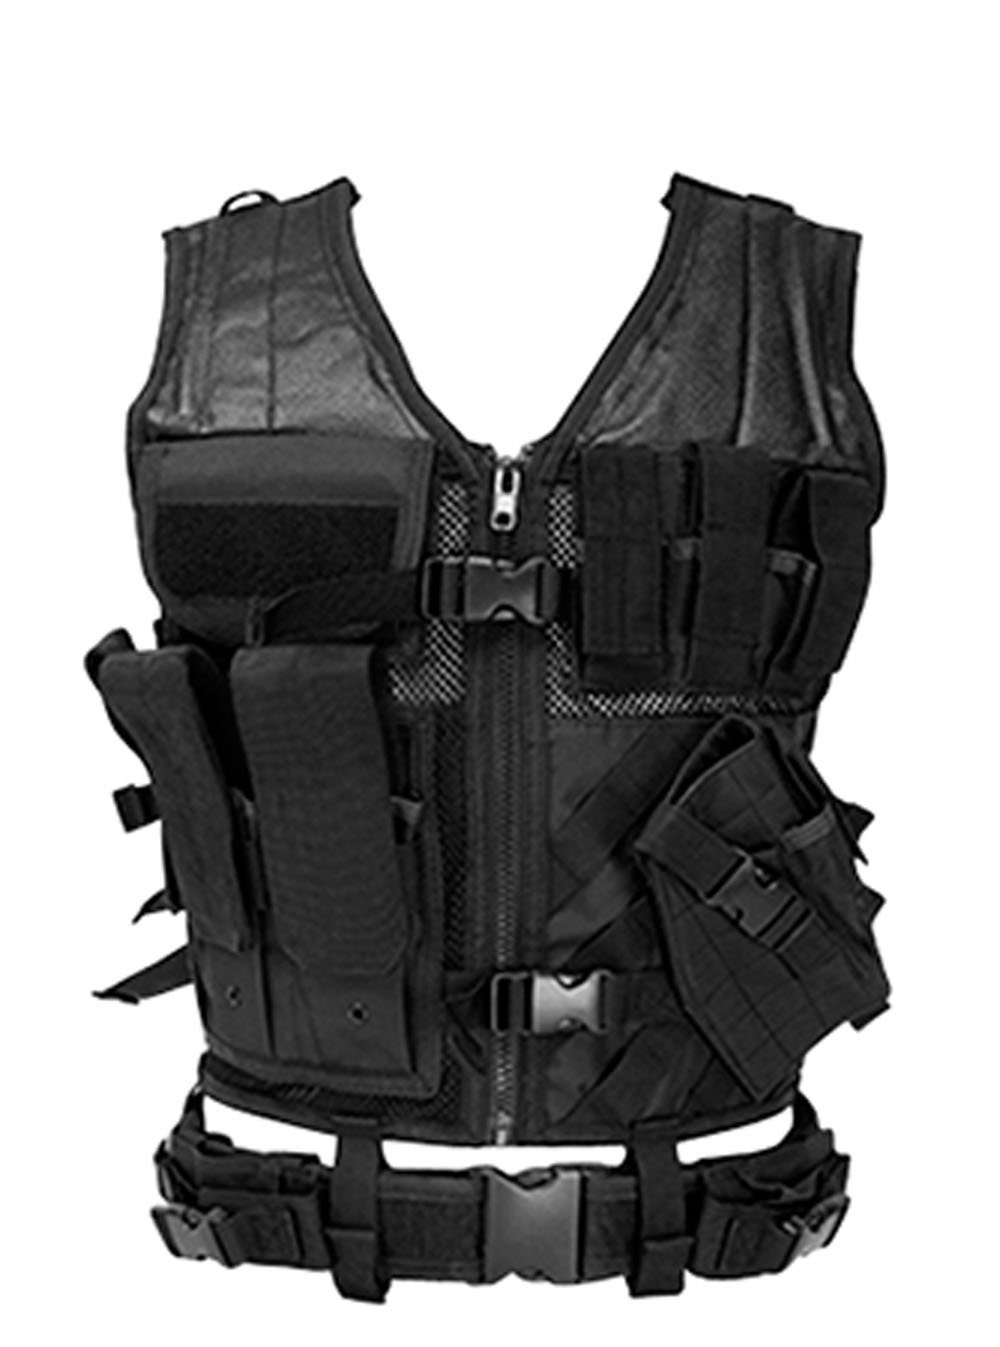 NCStar Tactical Vest Black XL-XXL, Adjustable Black